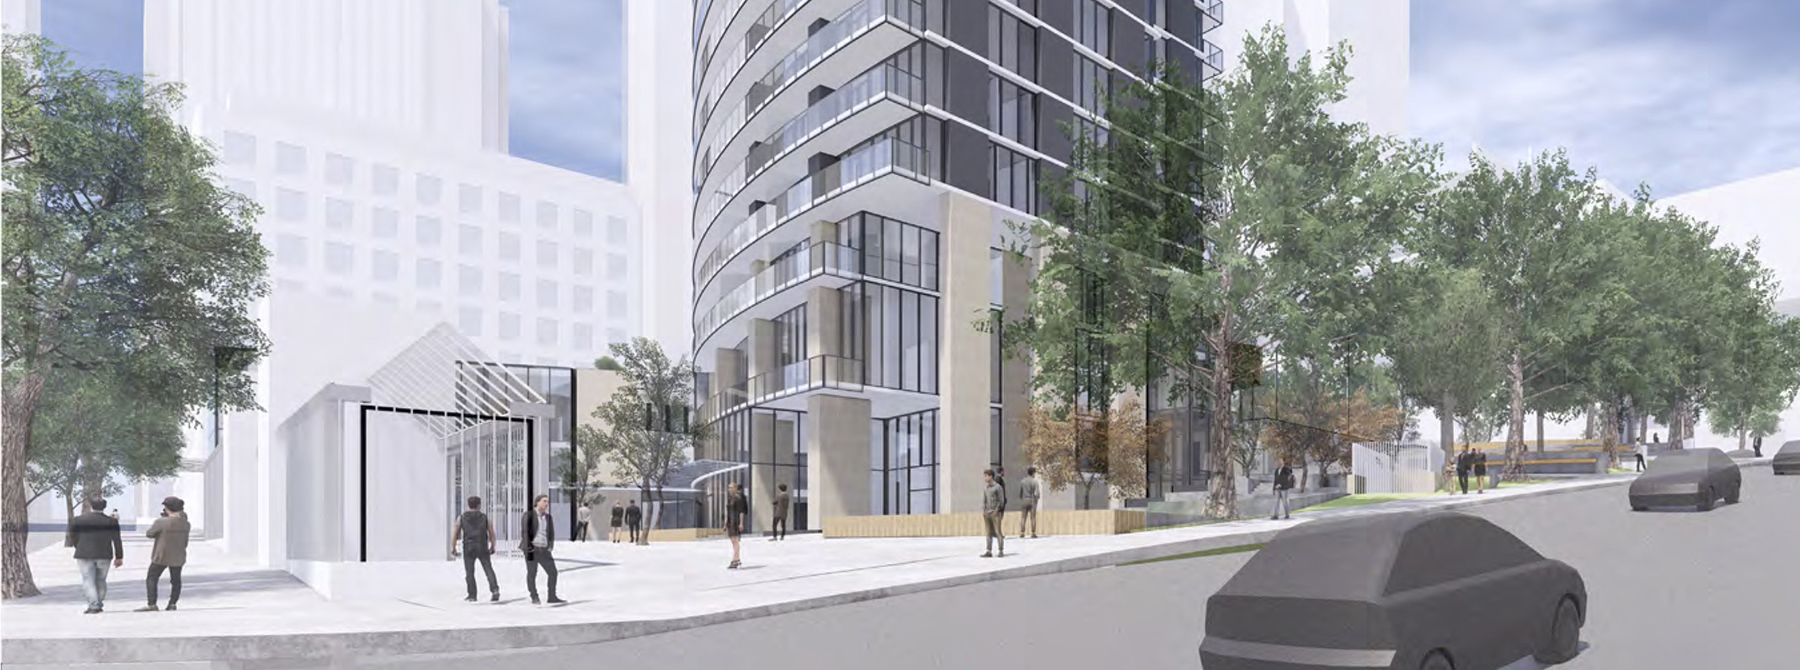 3rd & Cherry Tower Approved at Design Review Meeting